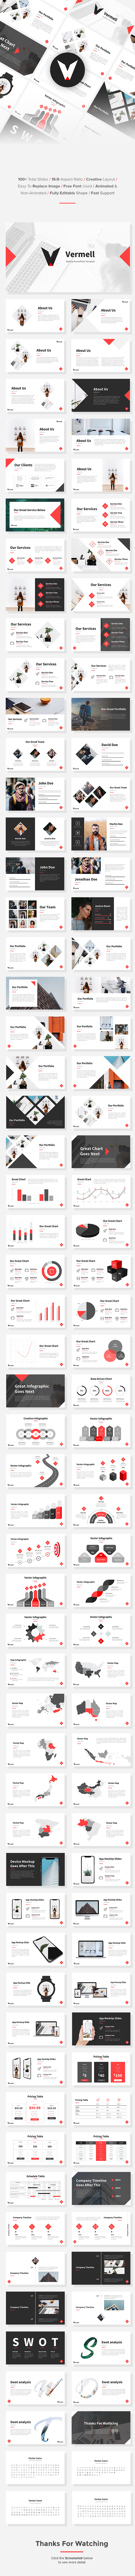 Vermell - Creative PowerPoint Template - Creative PowerPoint Templates